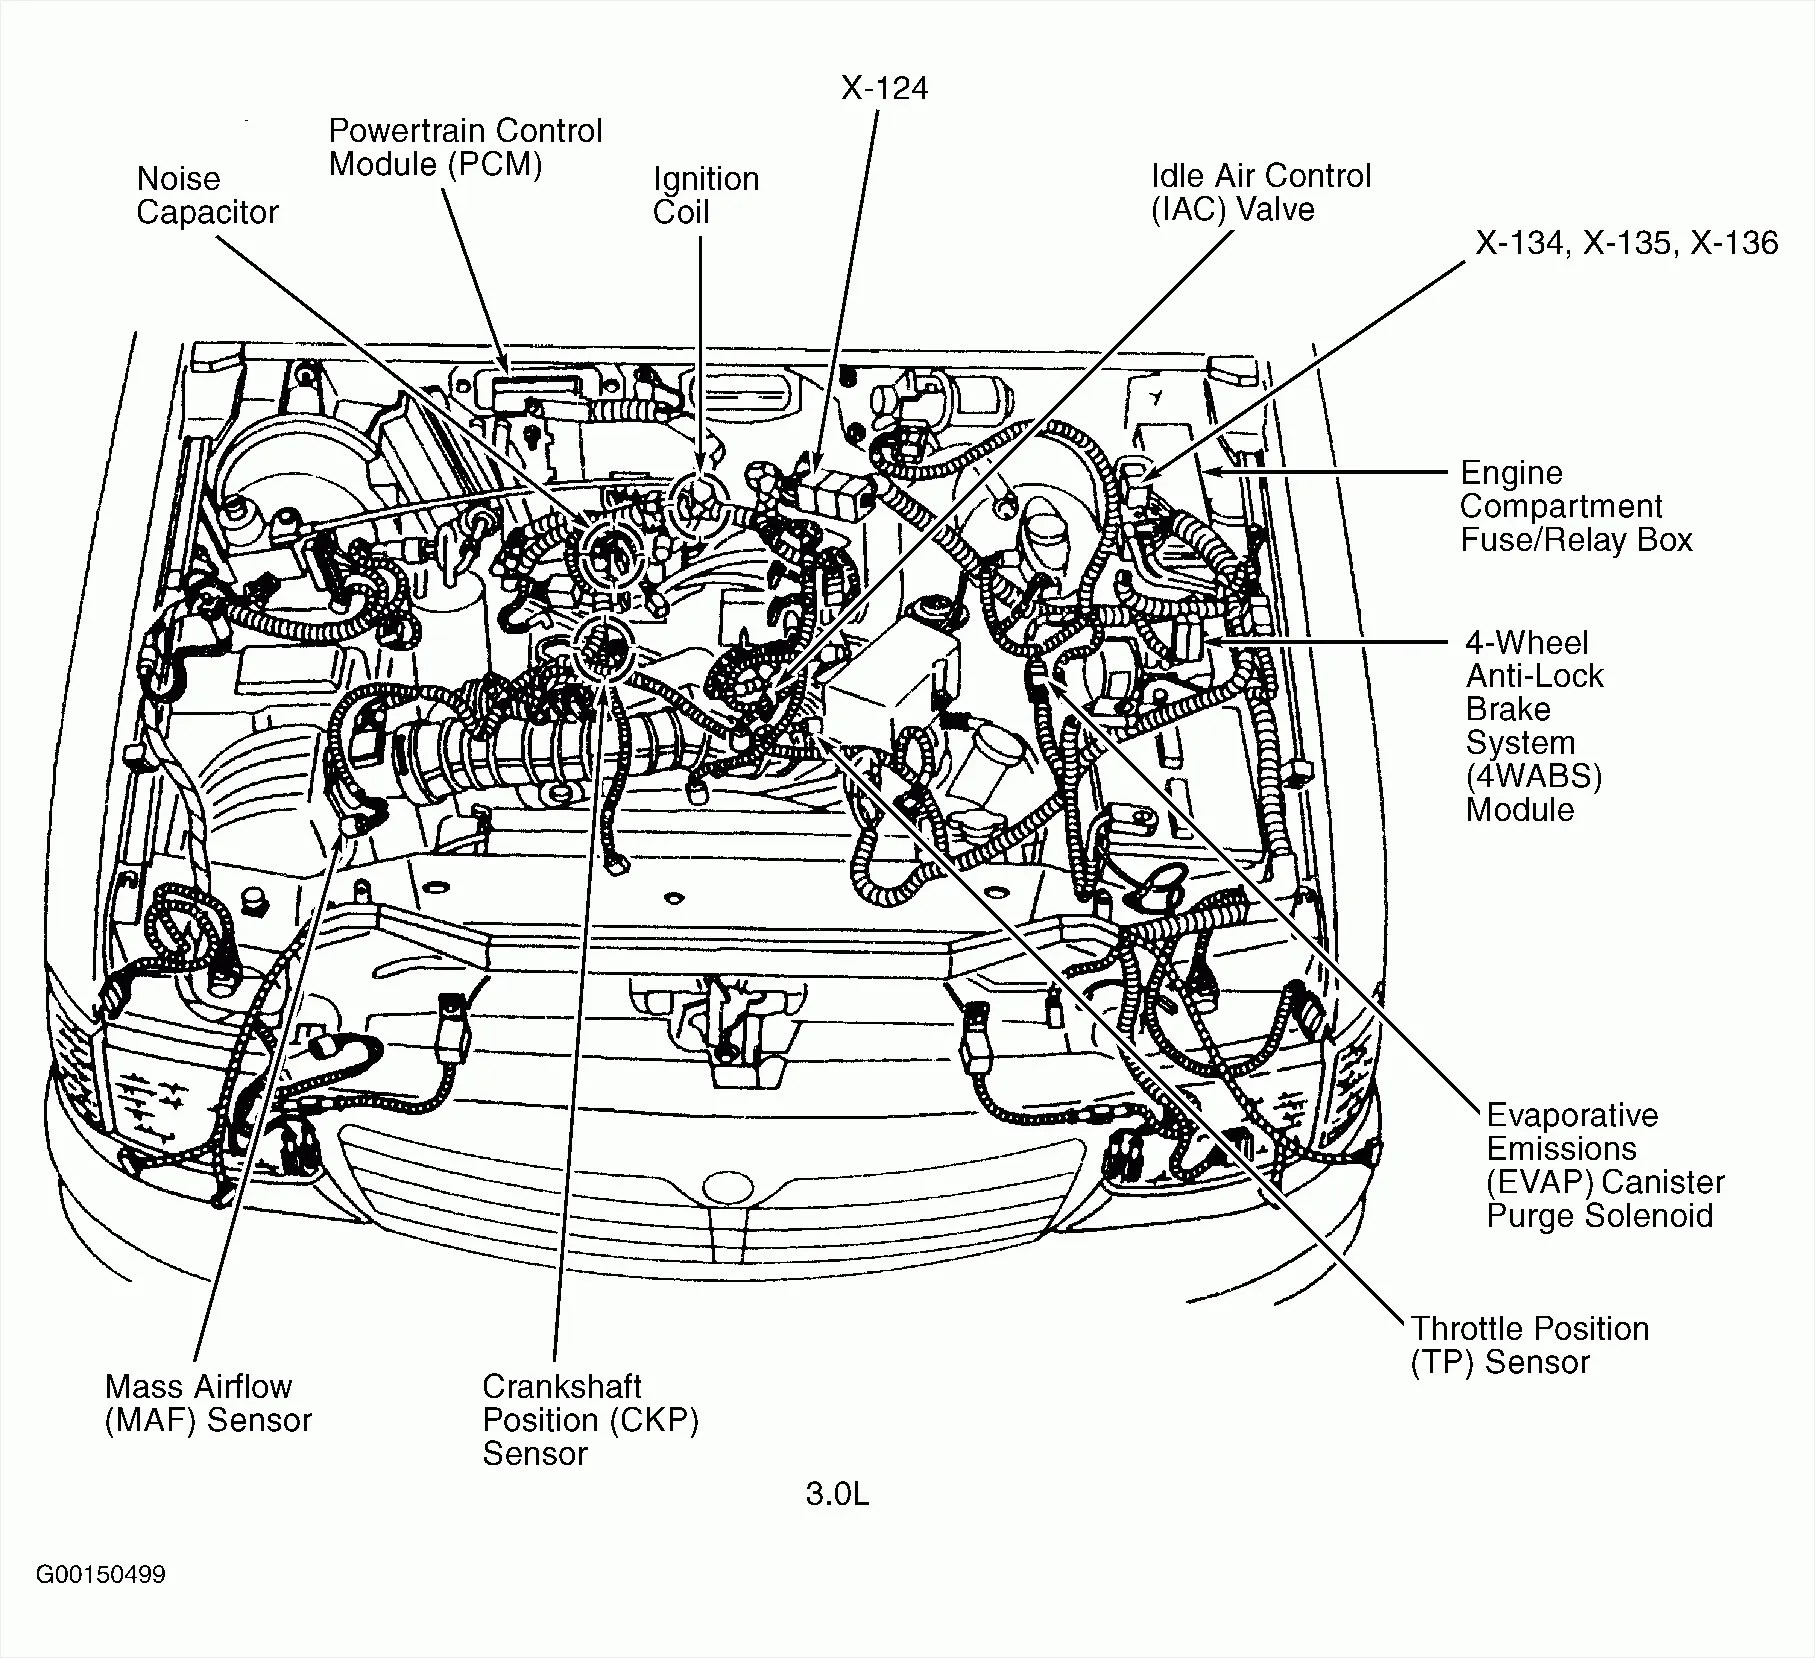 hight resolution of 2004 mazda wiring diagram wiring library rh 100 dreamnode online 2004 mazda 3 engine diagram 2004 mazda 3 rust issues